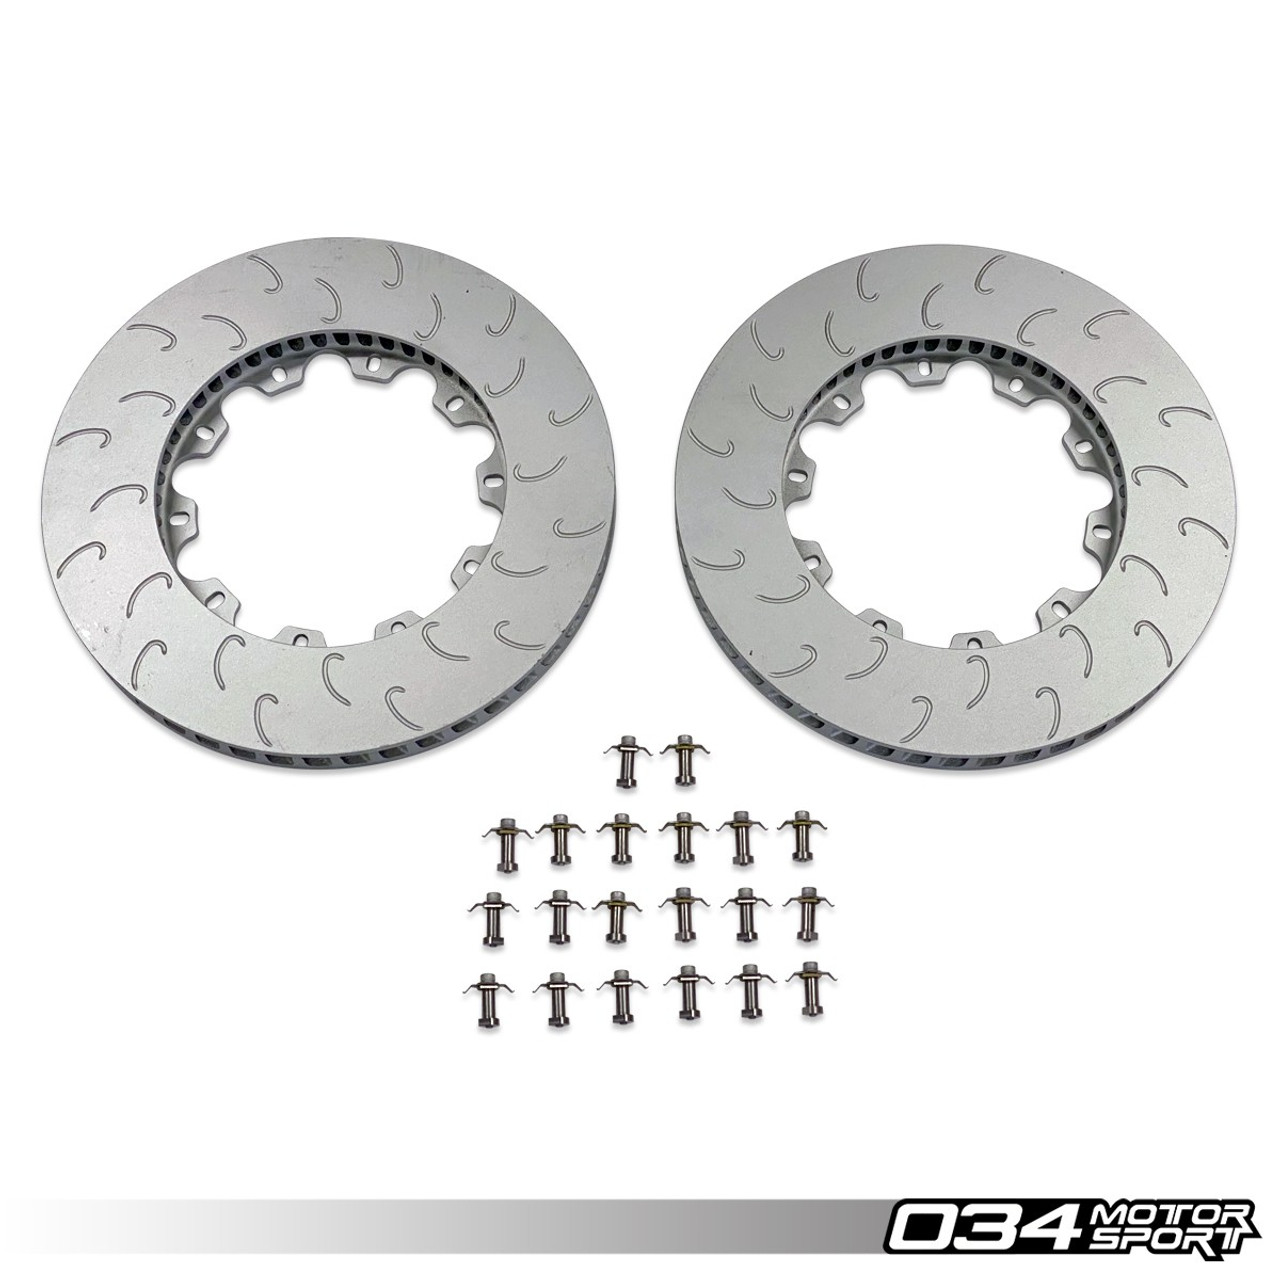 034Motorsport Replacement Rotor Ring Set for MQB 340x30